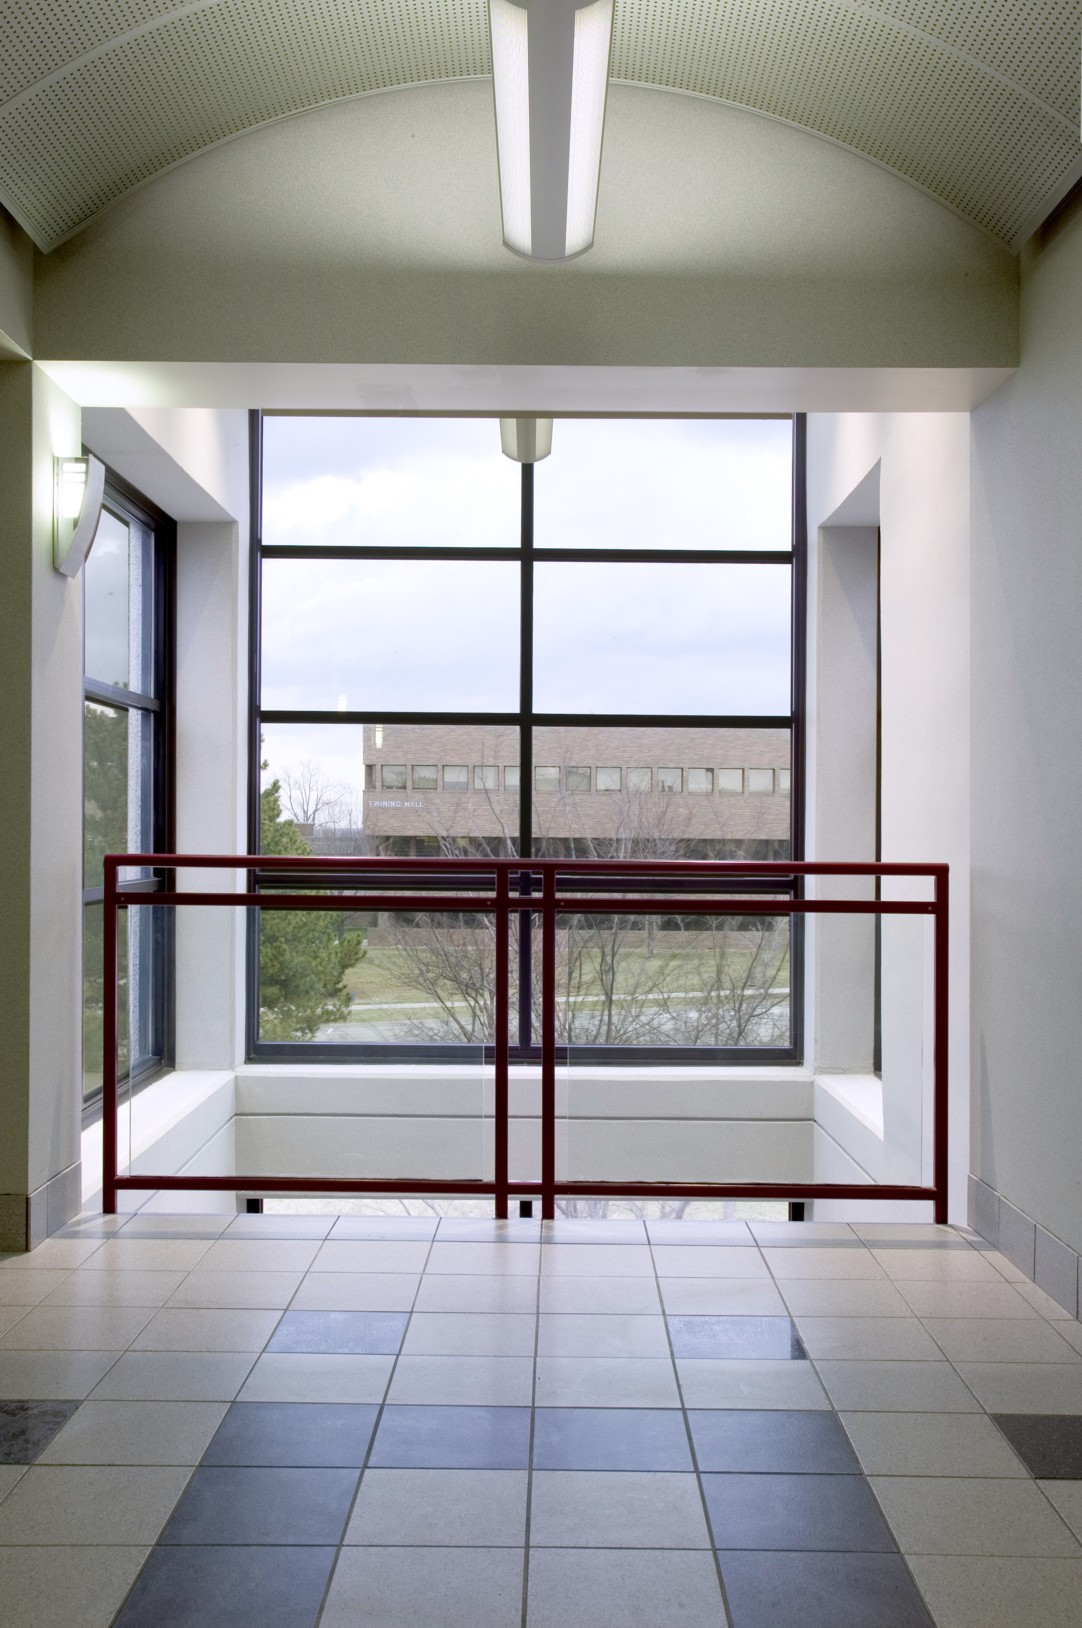 wright-patterson-airforce-base-technology-building-640-elevator-passthrough